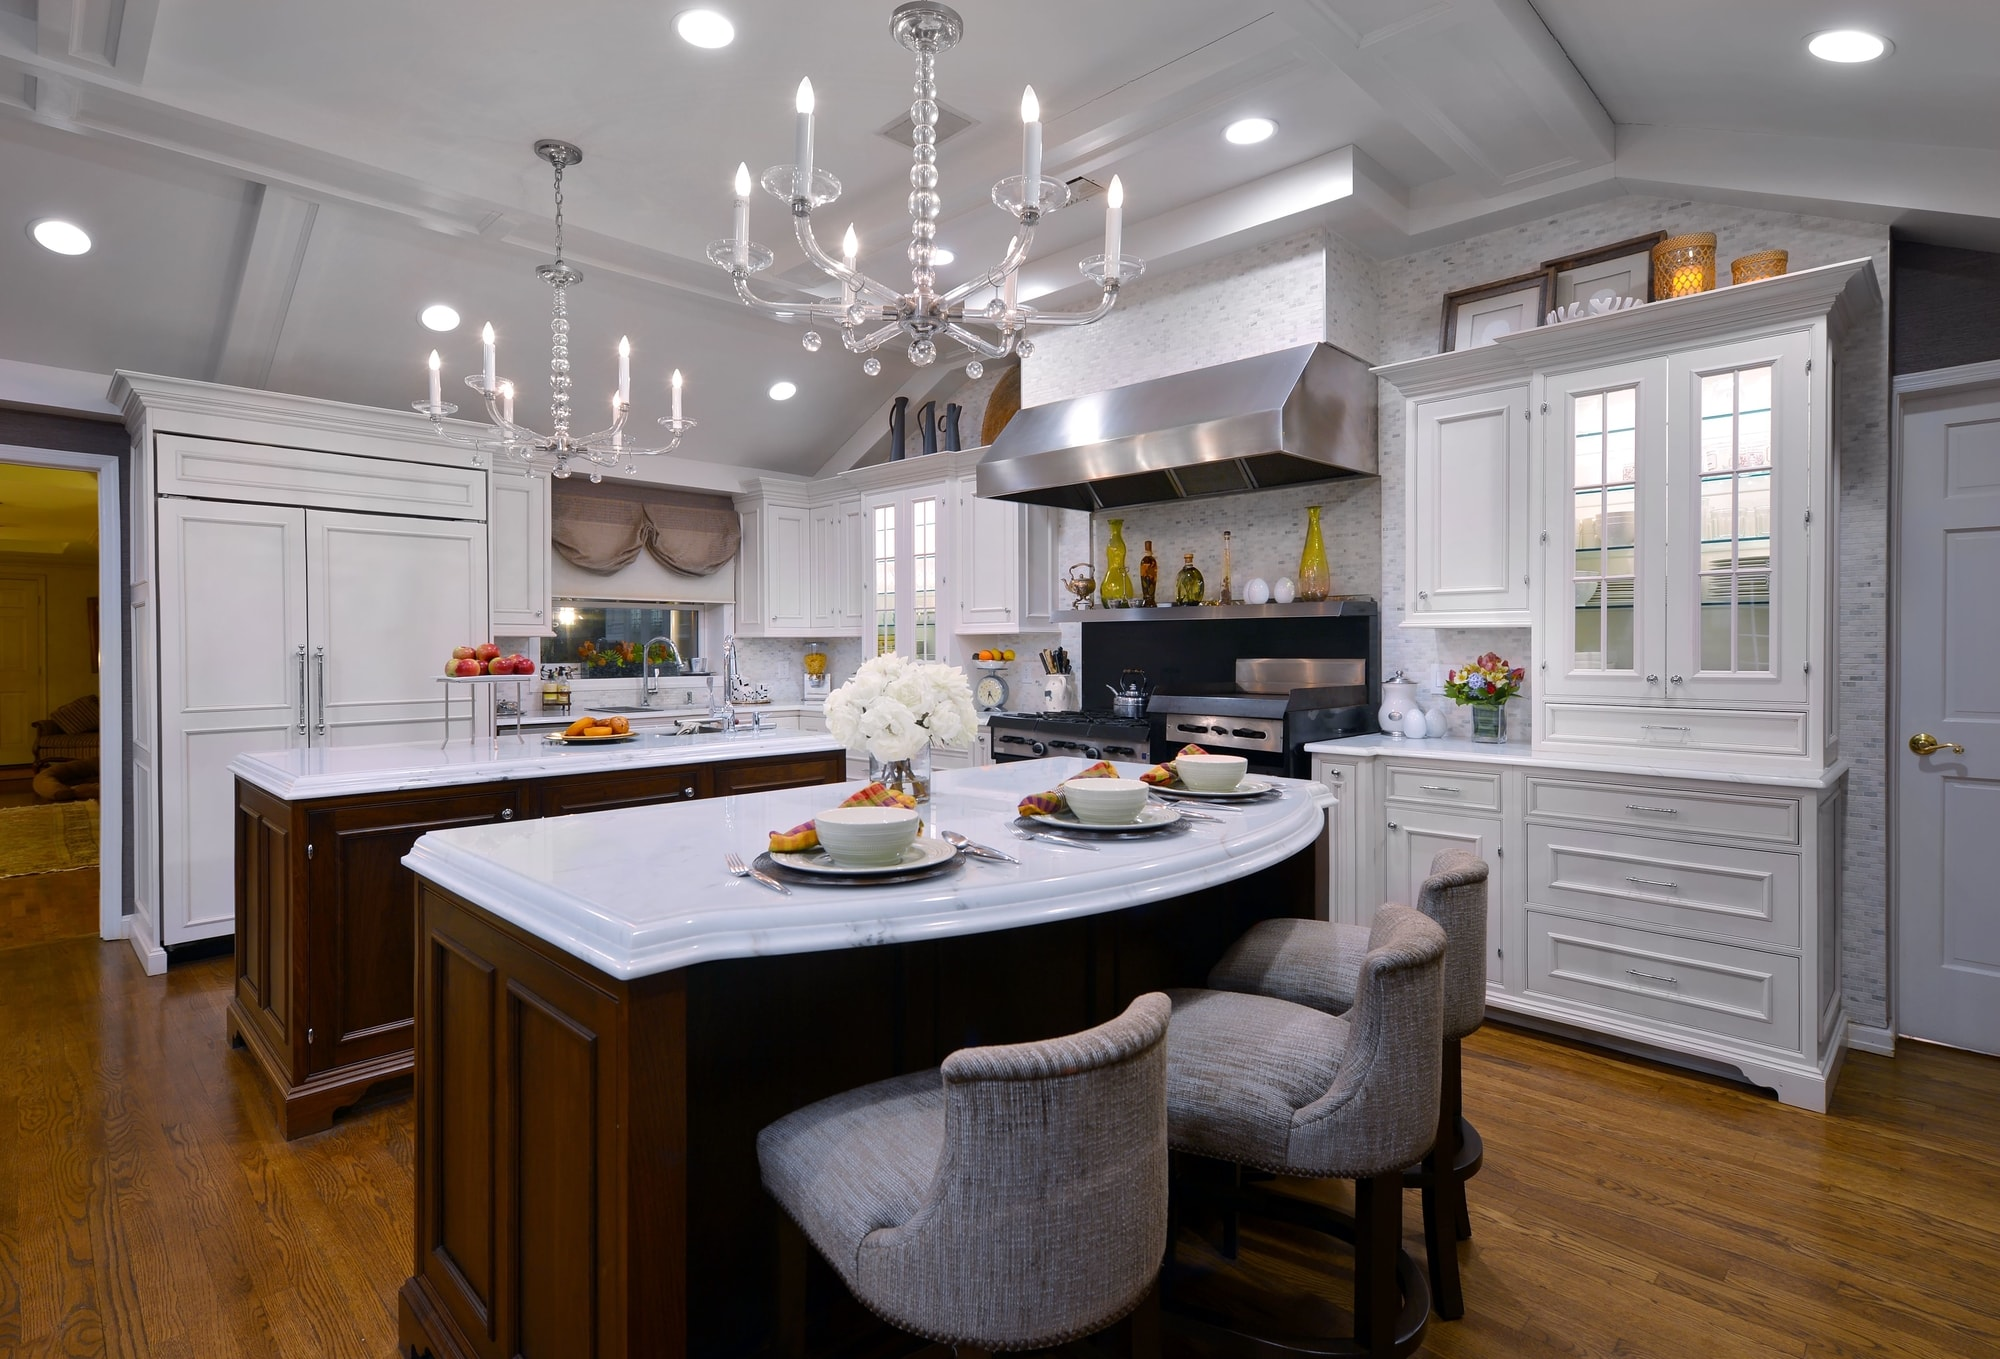 Traditional style kitchen with crystal chandeliers